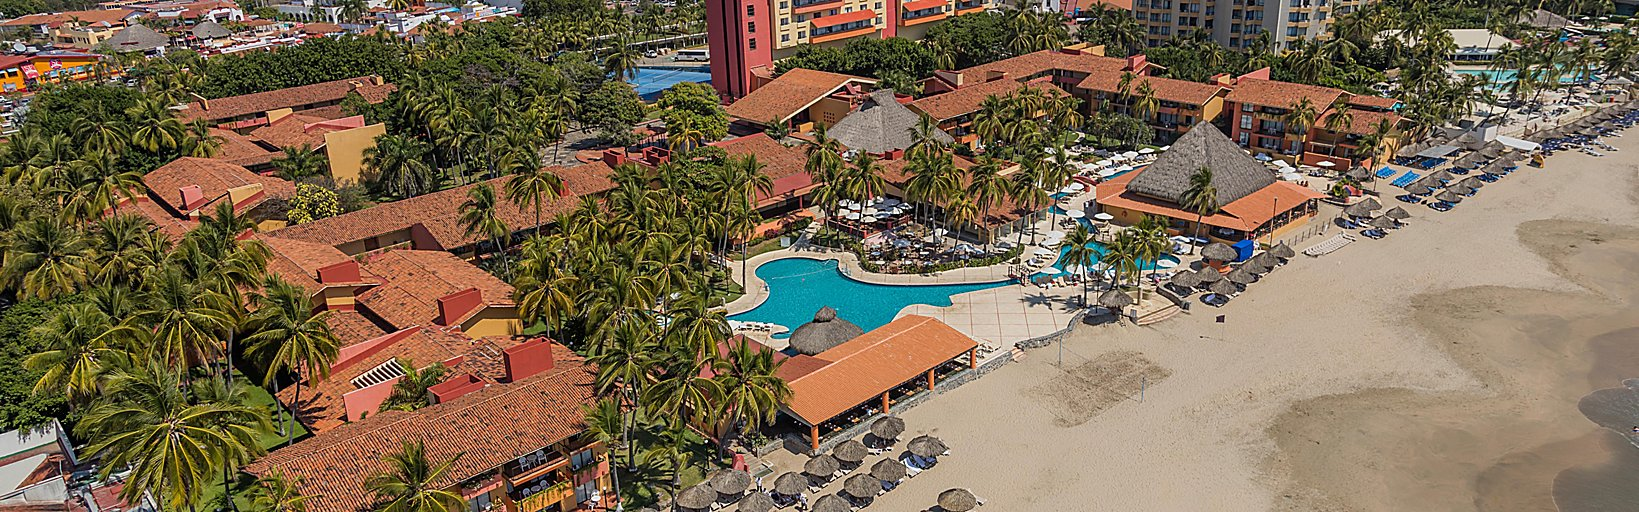 Map & Directions Zihuatanejo All Inclusive Resorts Map on zihuatanejo beach hotels, azul all inclusive, zihuatanejo restaurants, south carolina vacations all inclusive, zihuatanejo mexico,